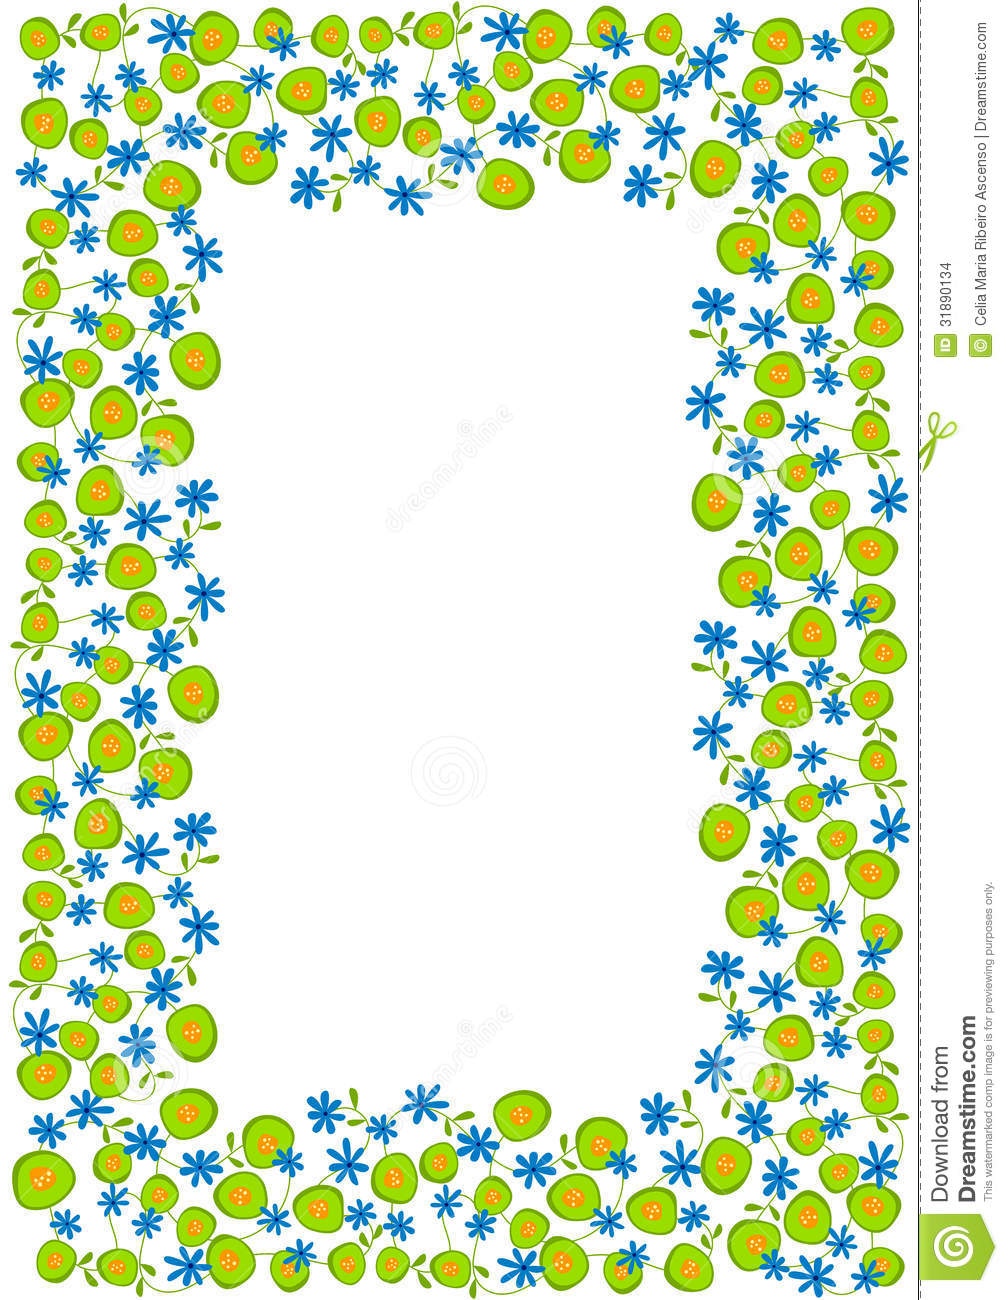 Cute Circle Wallpaper Blue And Green Spring Flowers Frame Border Stock